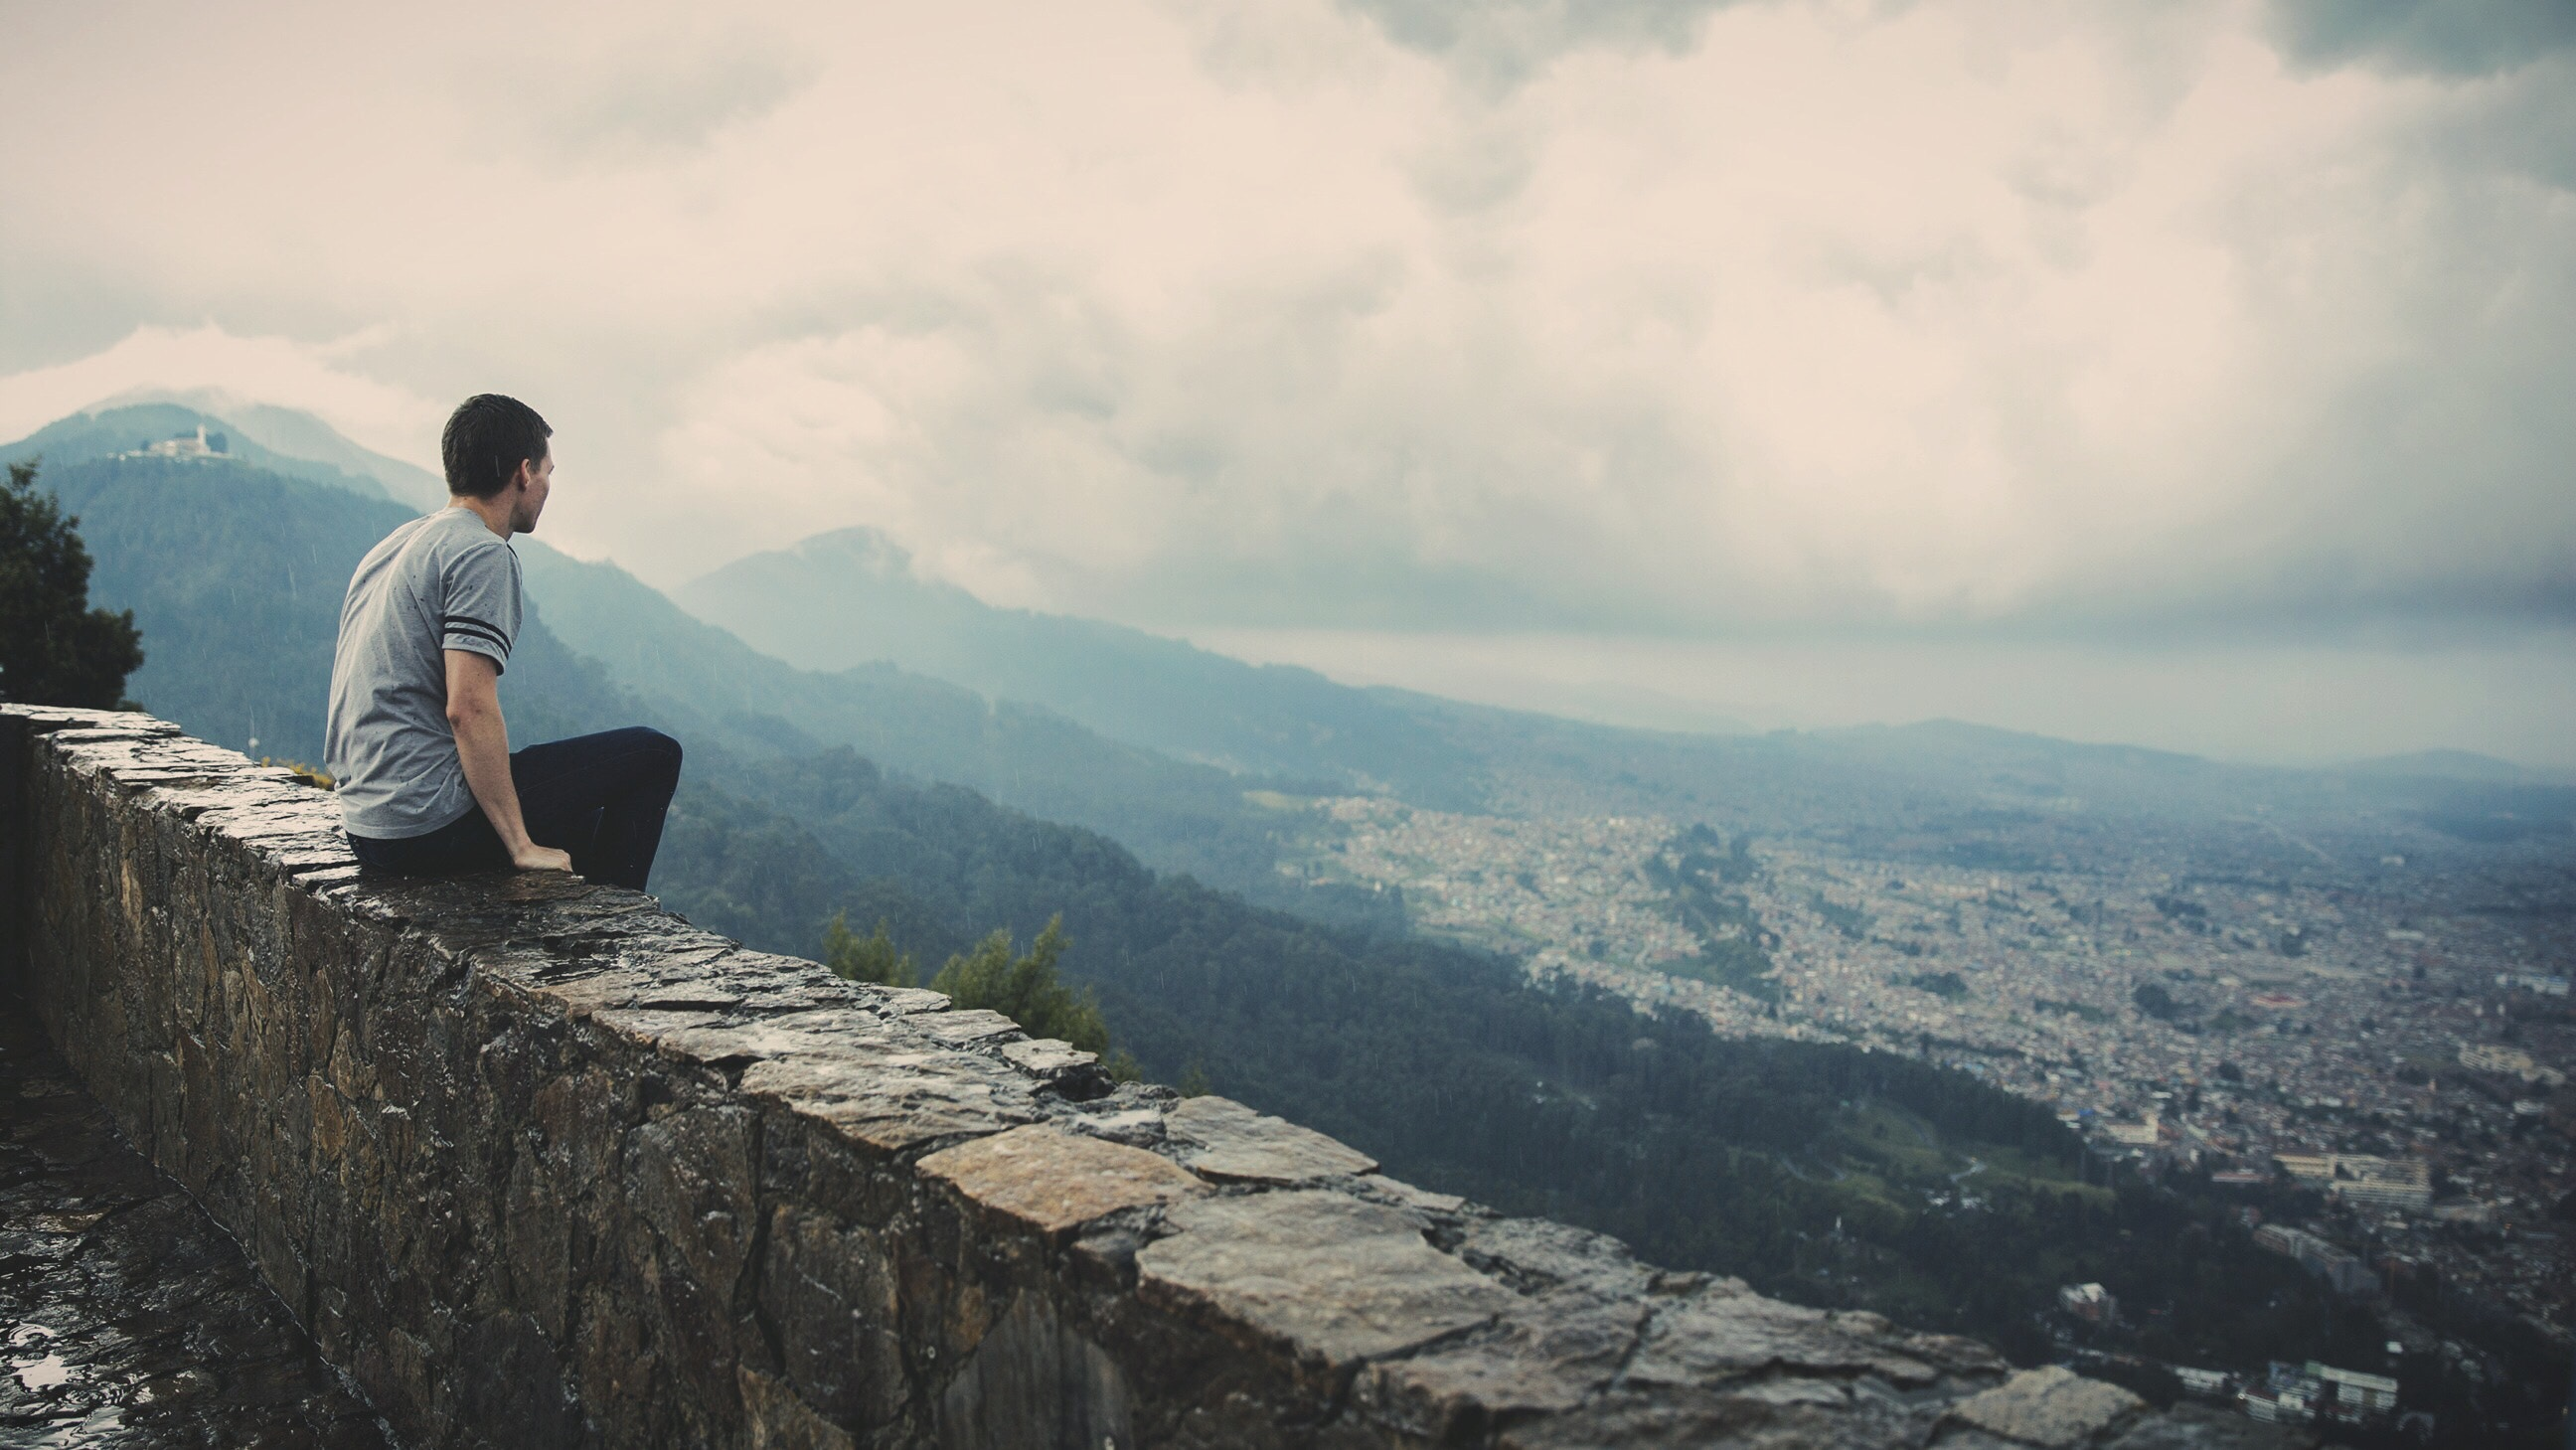 Man sitting on a wall overlooking a city